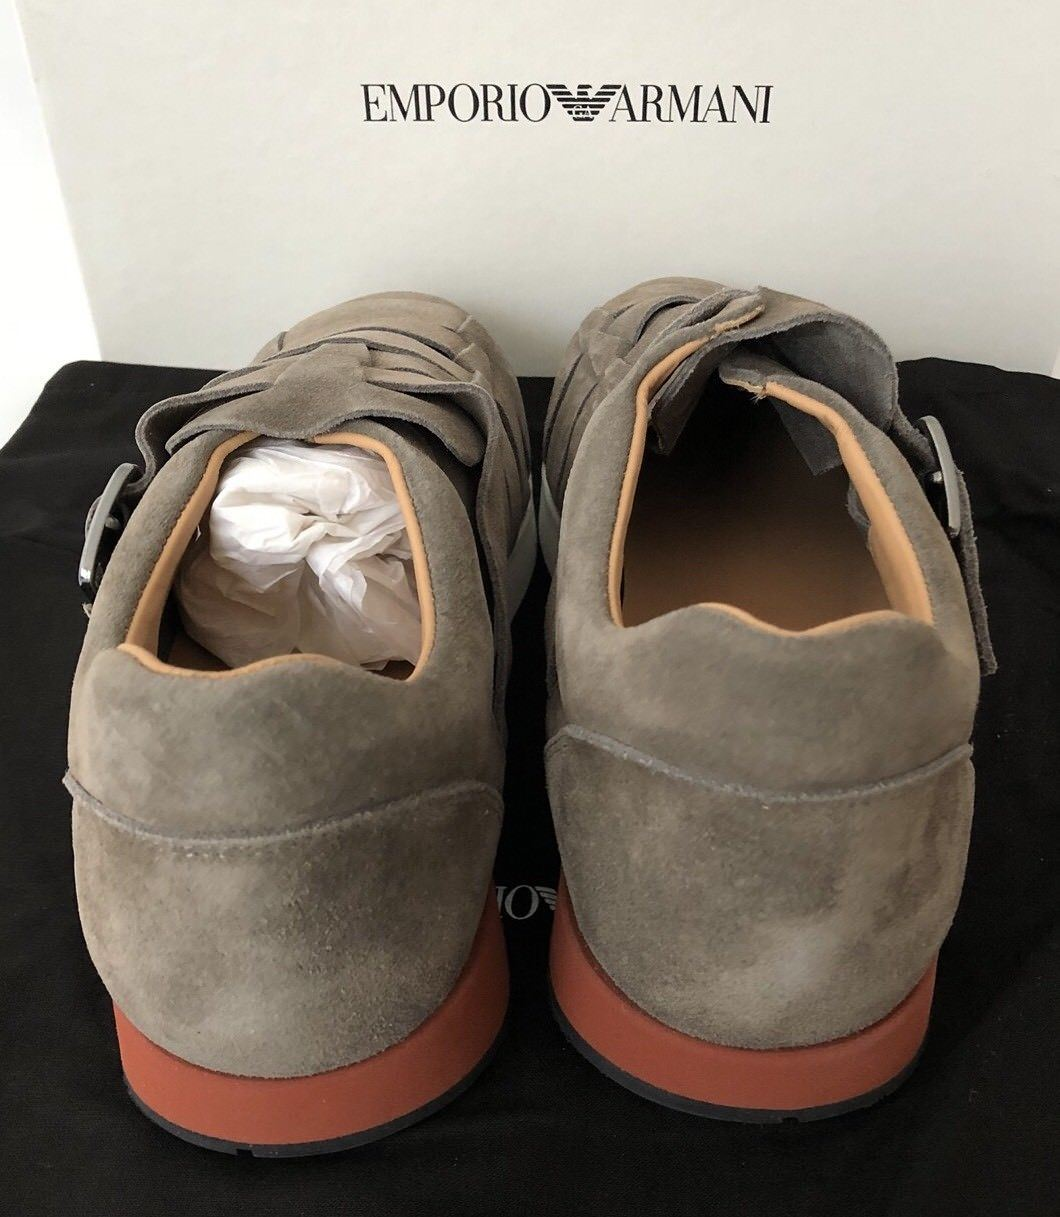 NIB $525 Emporio Armani Men's Suede Loafer Sneakers Brown 9 US X4L039 Spain - BAYSUPERSTORE